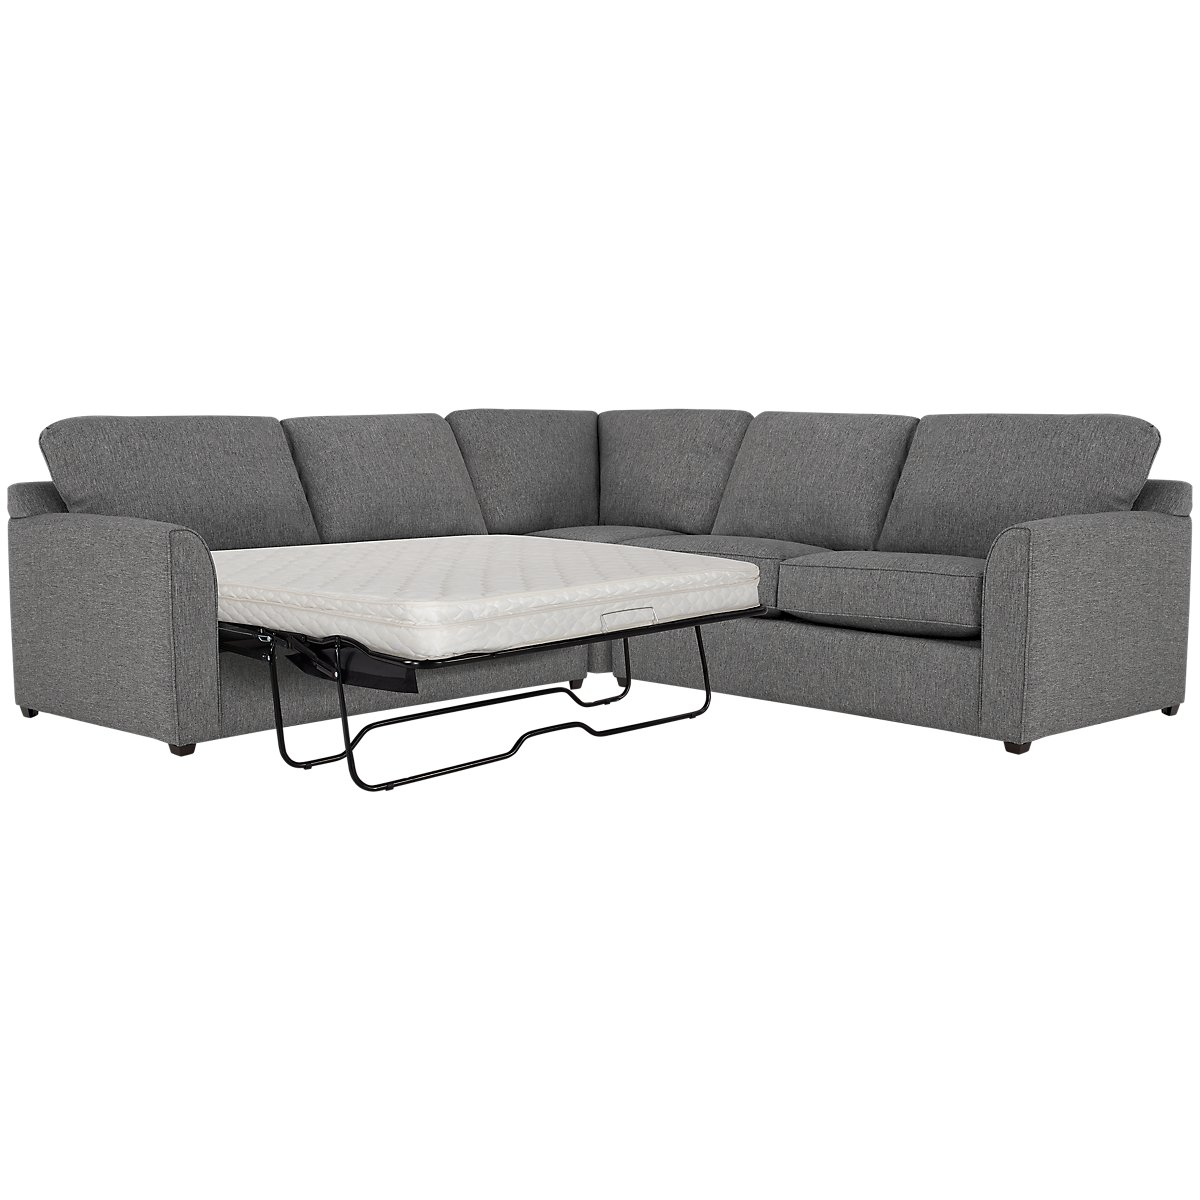 Asheville Gray Fabric Two-Arm Left Innerspring Sleeper Sectional